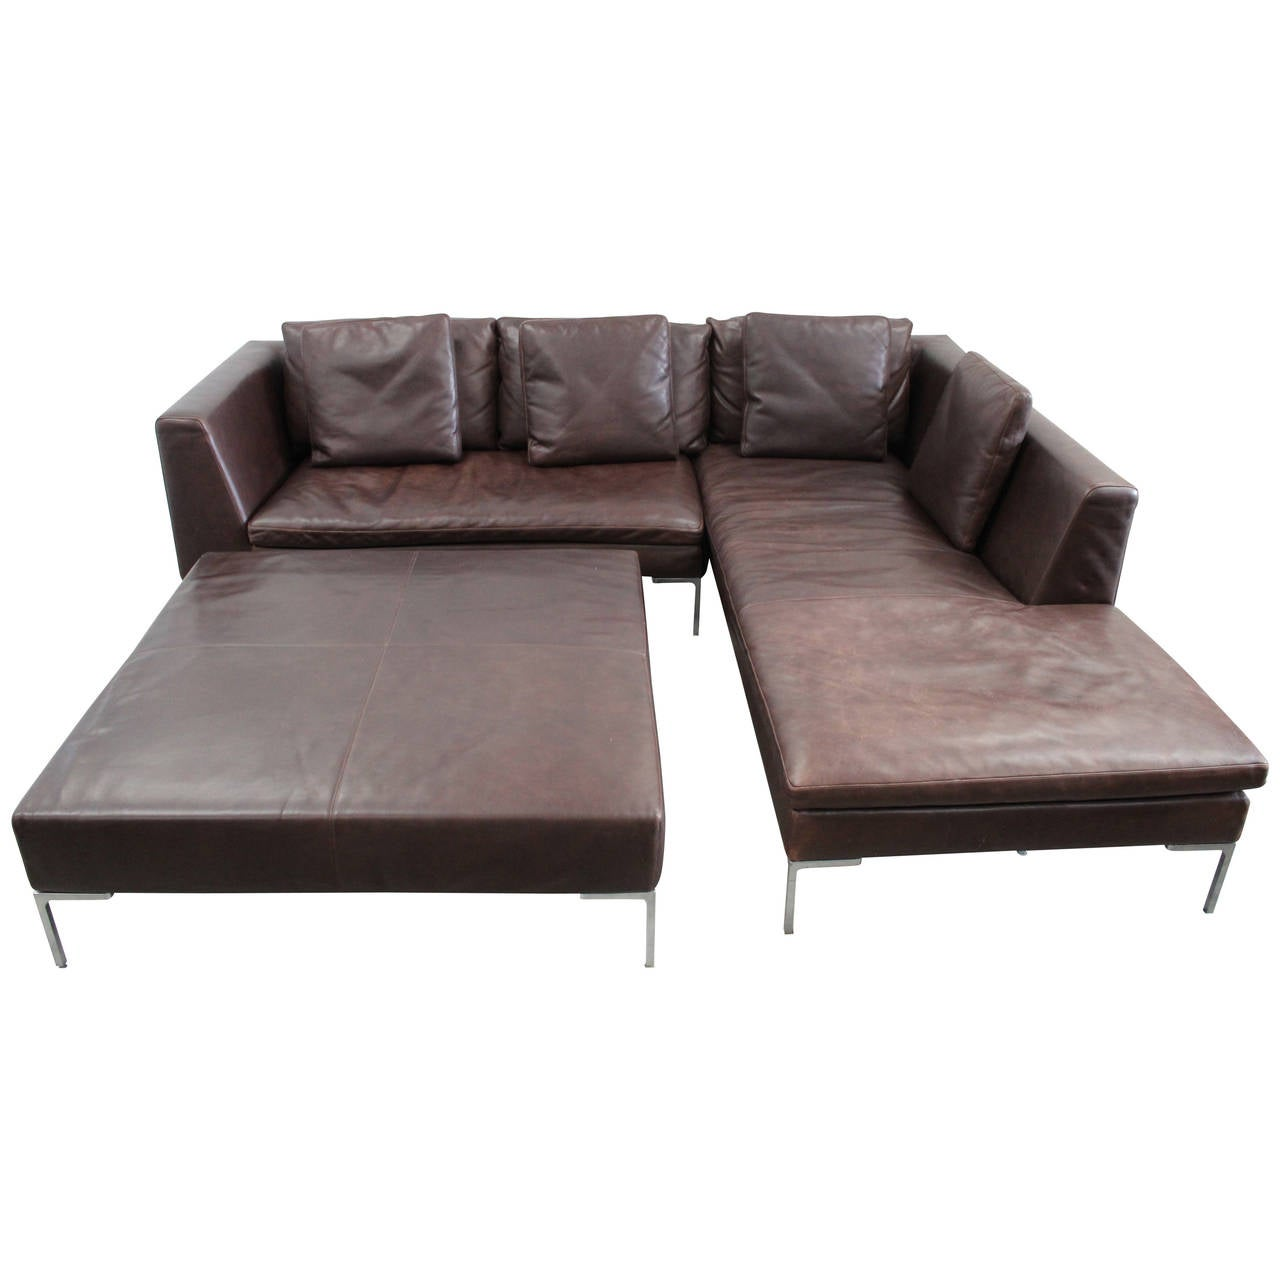 B B Italia Charles L Shape Sofa And Ottoman In Leather By Antonio Citterio At 1stdibs